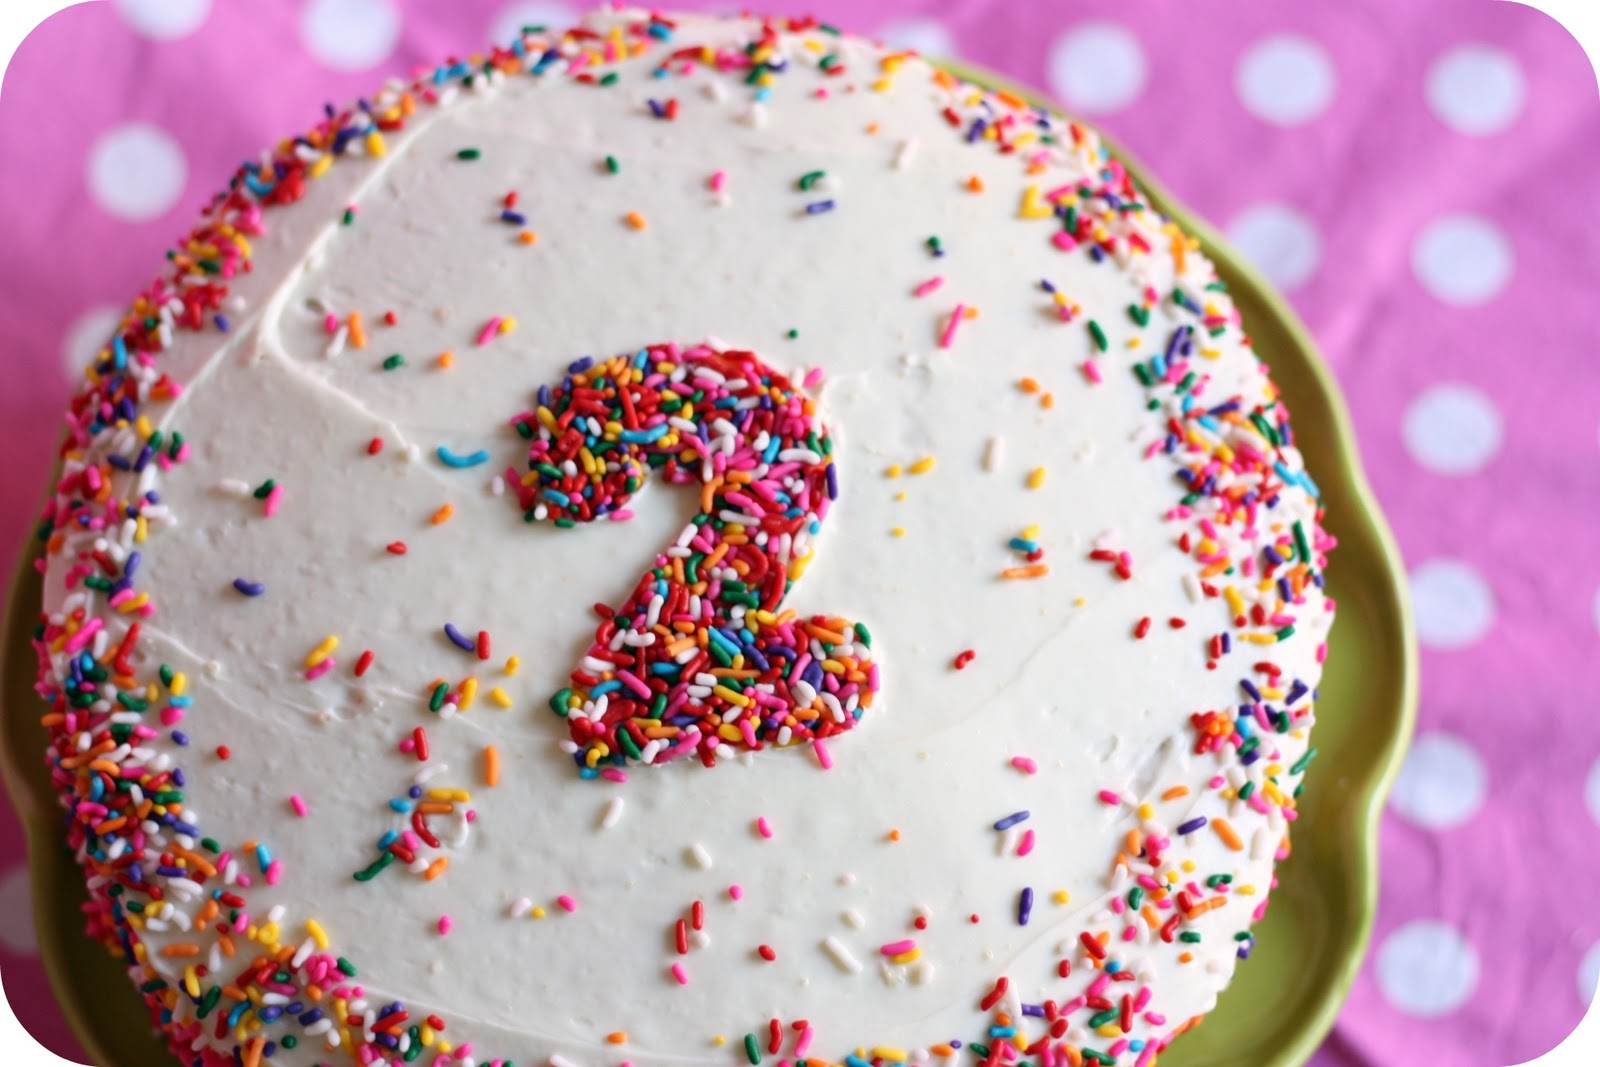 Piping Cake Decorating Ideas For Beginners